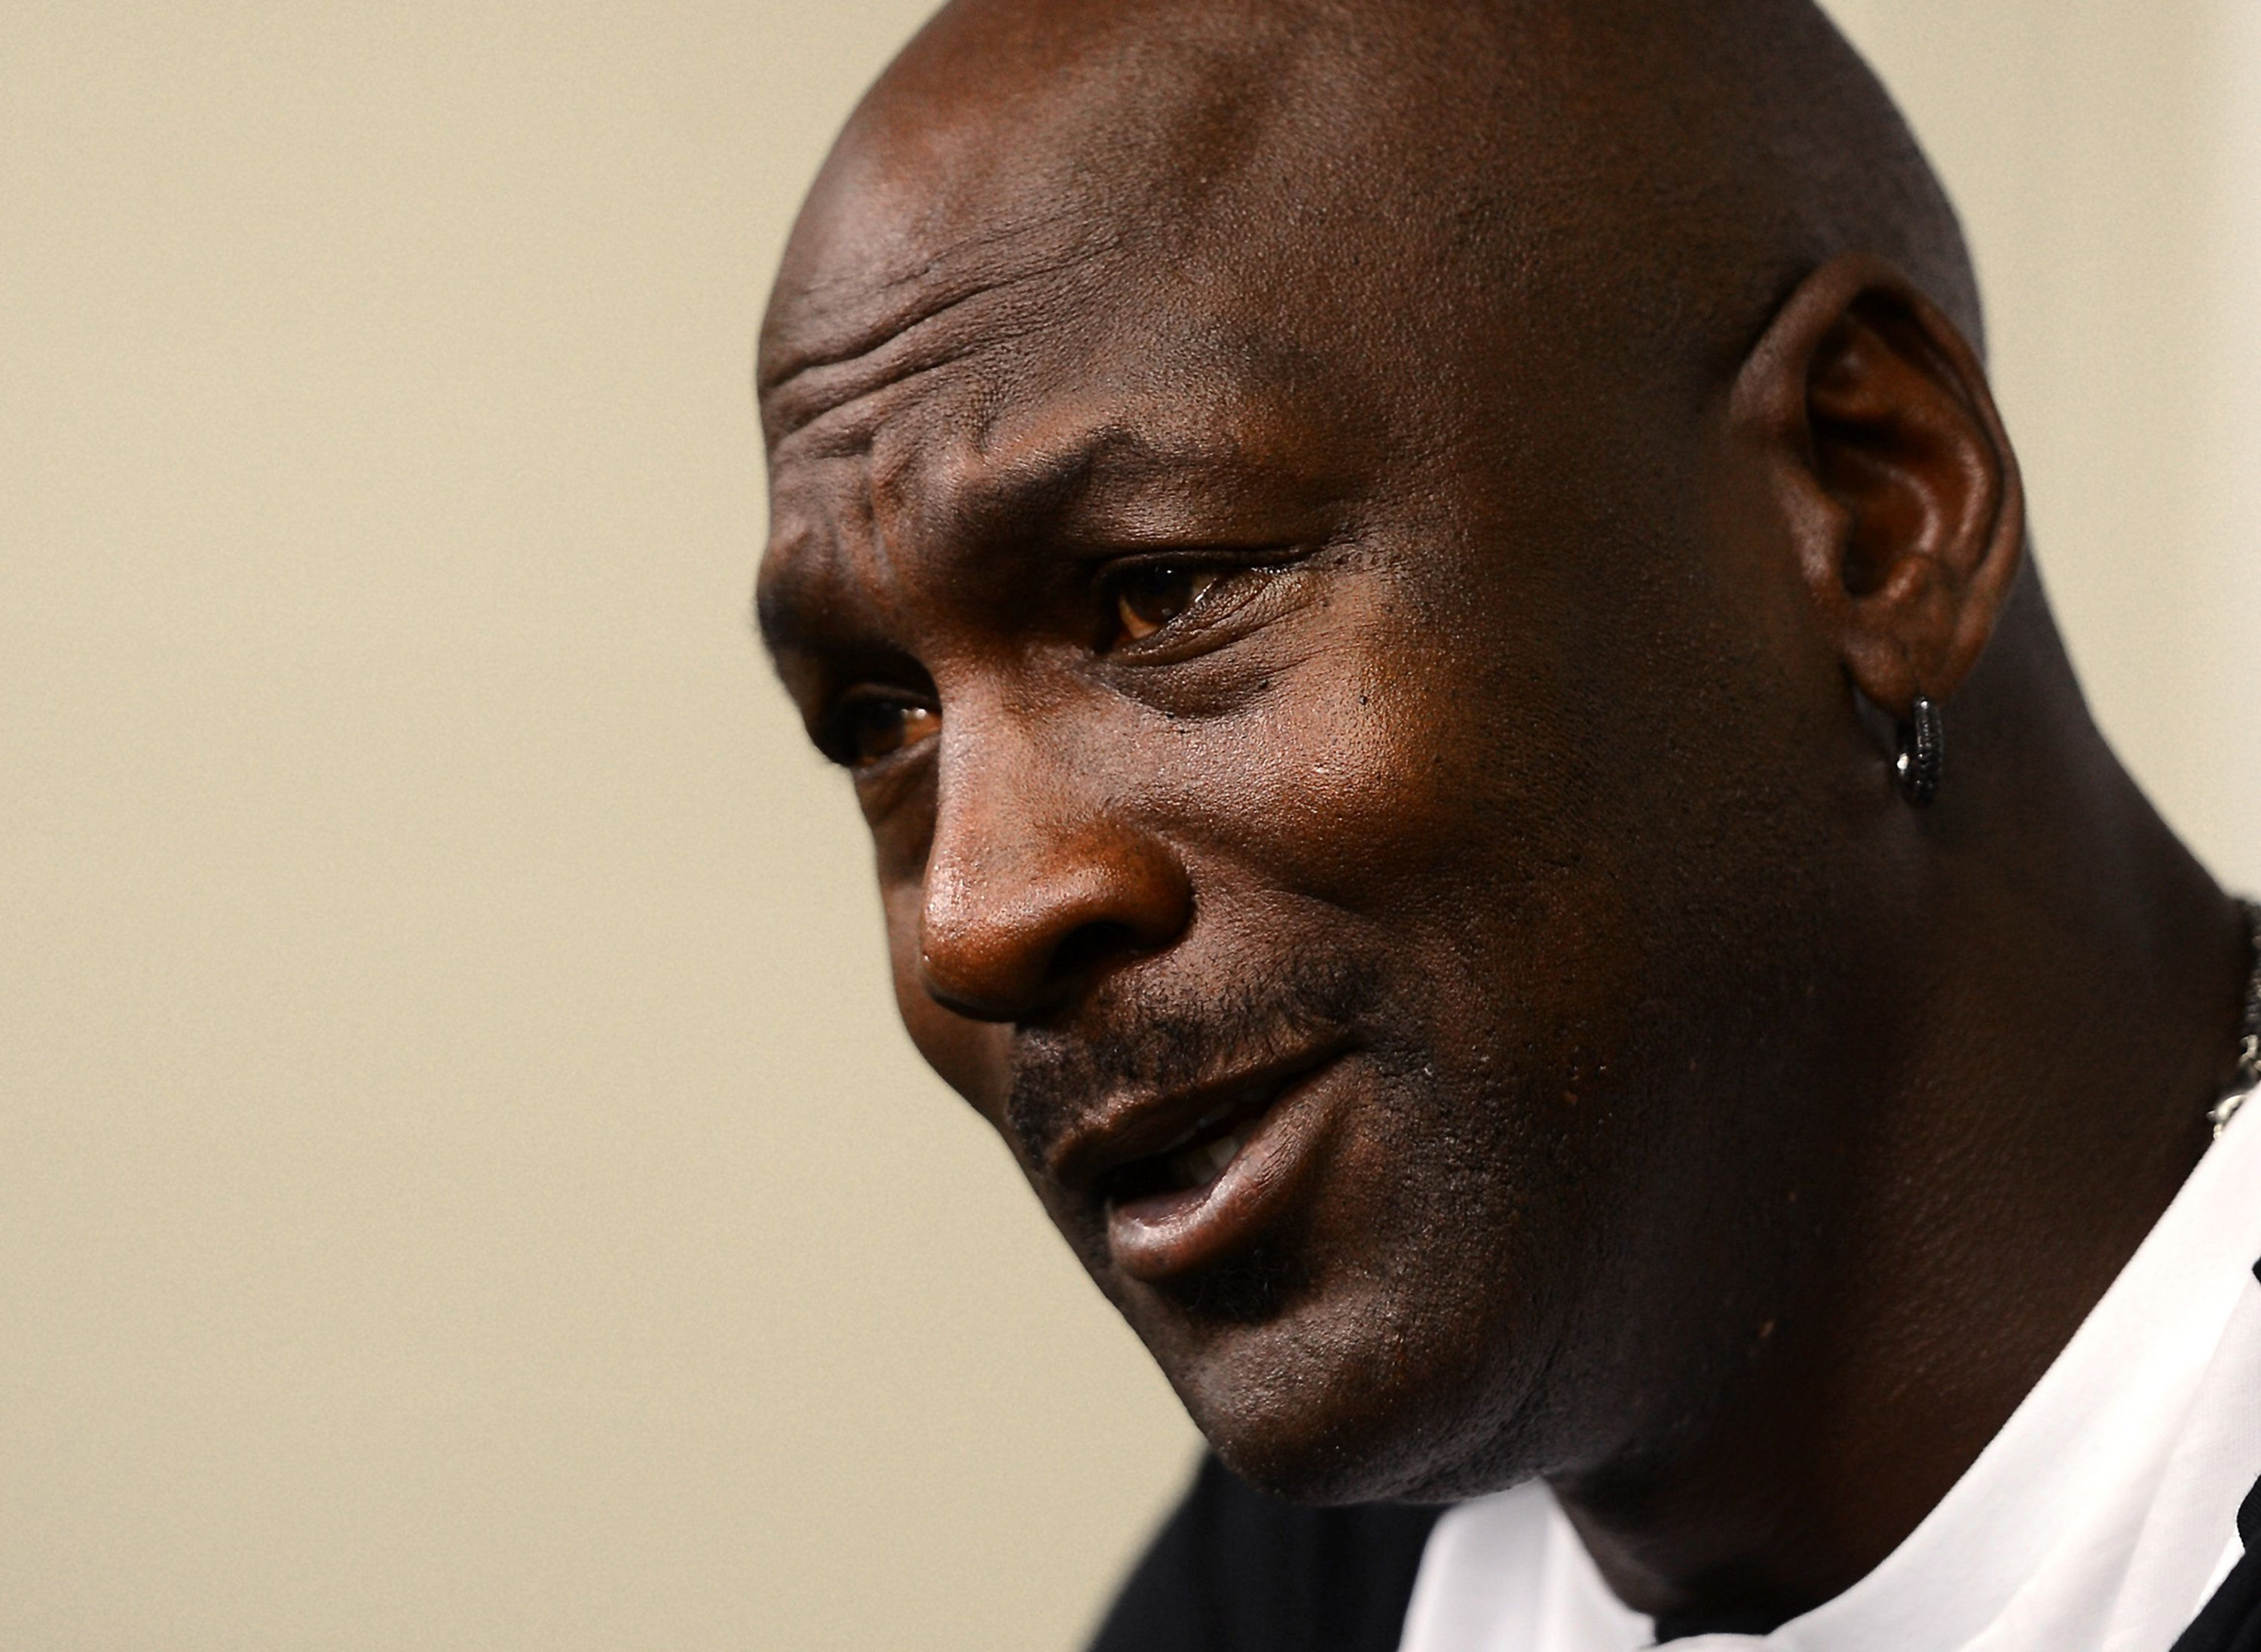 Michael Jordan responds to a question during a news conference on on Tuesday, Oct. 28, 2014, at Time Warner Cable Arena in Ch